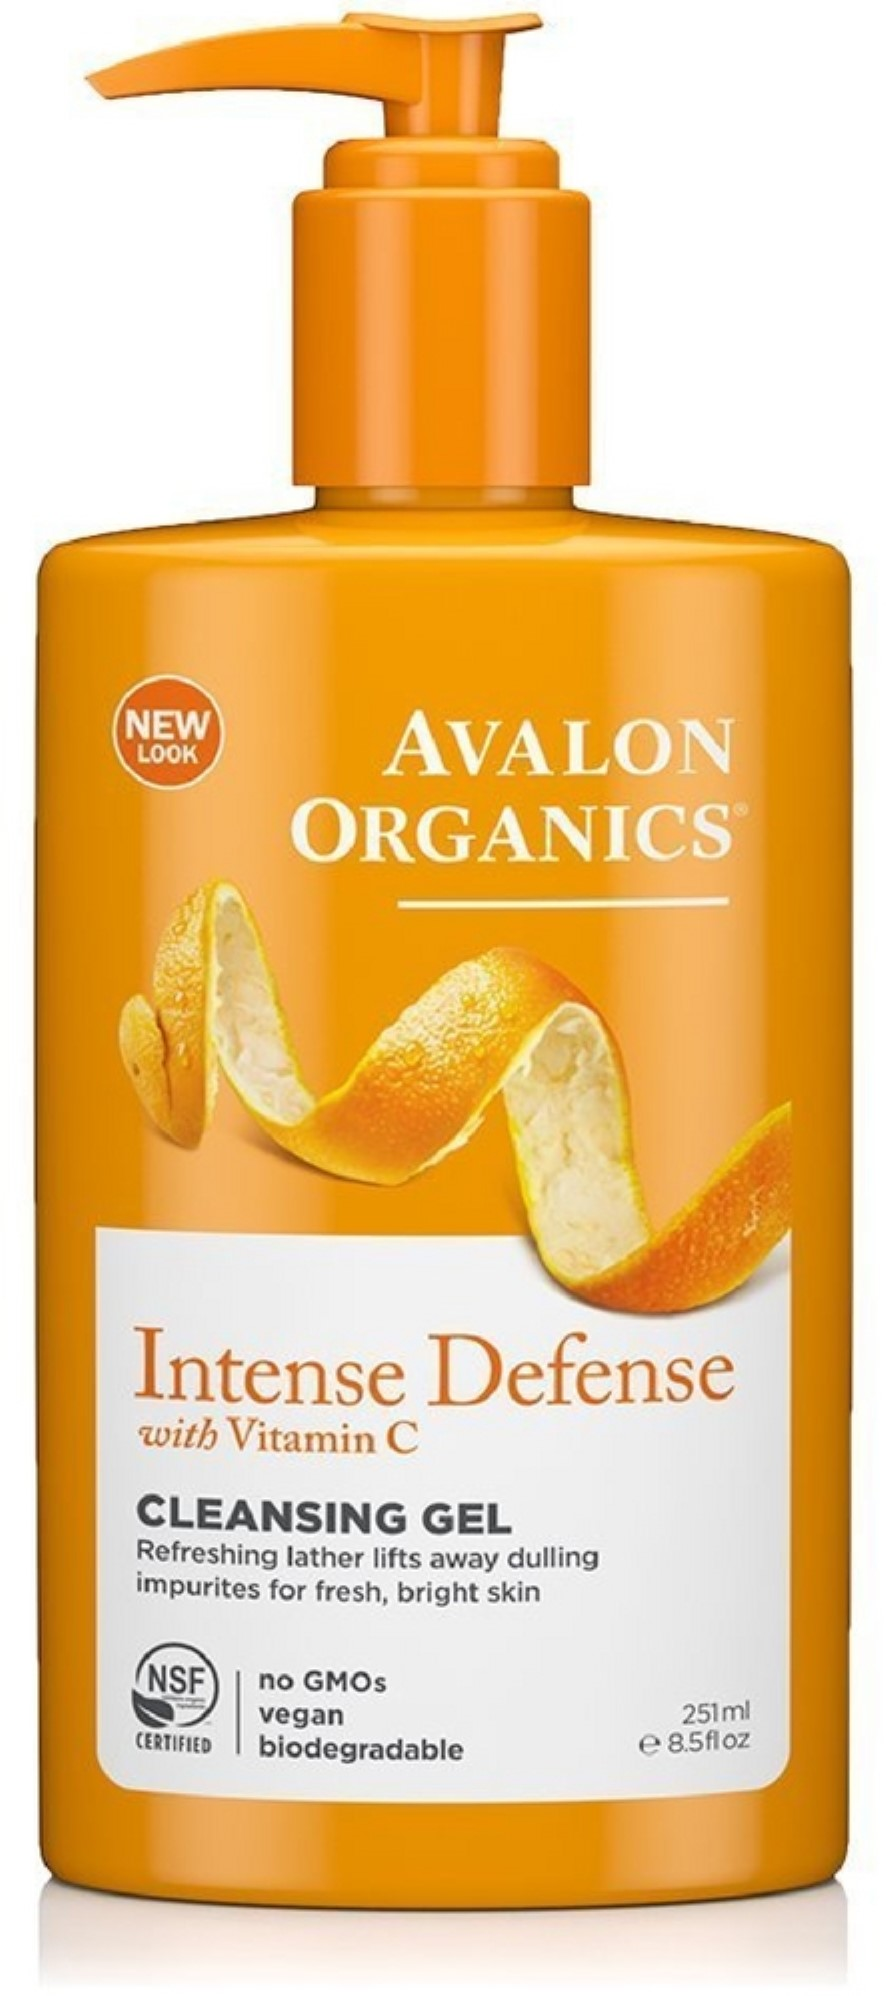 Avalon Organics Intense Defense with Vitamin C Cleansing Gel 8.50 oz (Pack of 2) 2 Pack - EcoTools Pure Complexion Facial Sponge, Deep Cleansing 1 ea